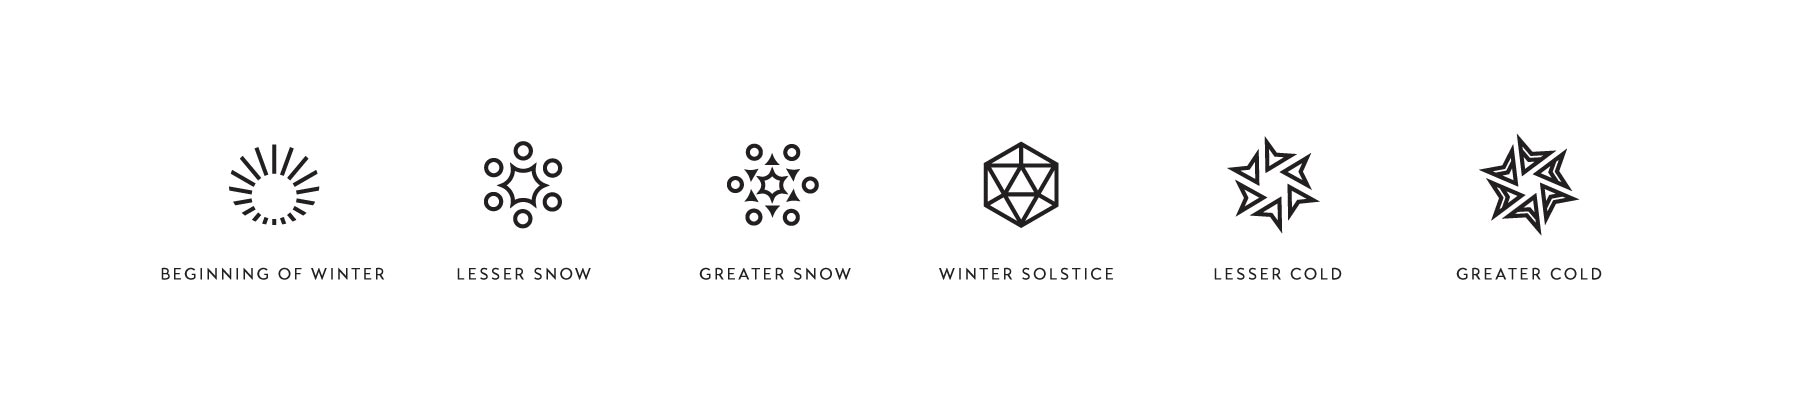 Icon designs for the winter seasons, created by Lisa Furze